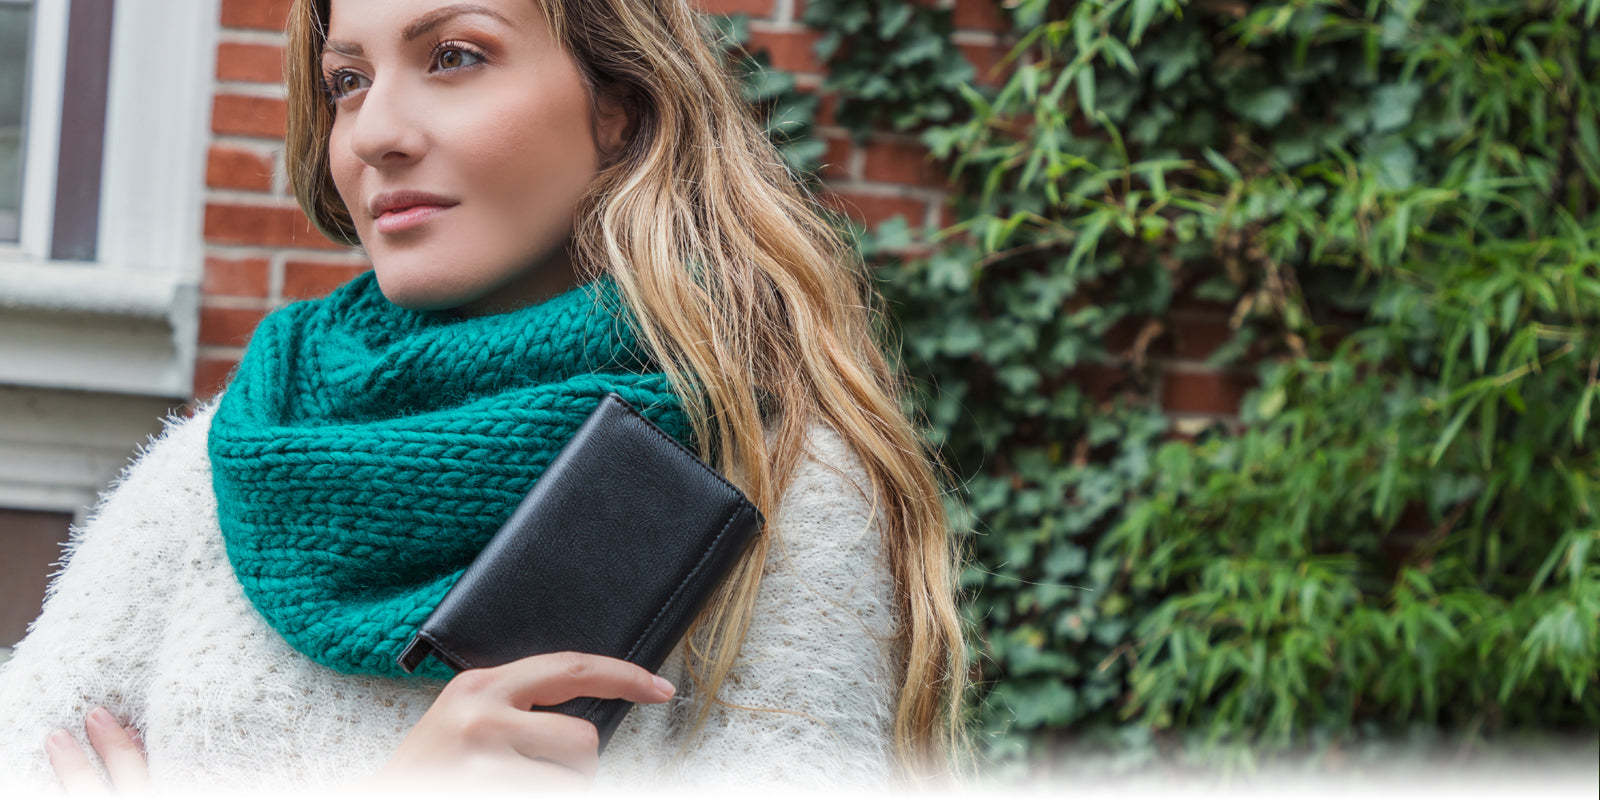 Mundi Wallets Blog - Women's Wallets & Women's Crossbody Bags - Get insights on women's wallets, crossbody bags, fashion trends, product designs, and more by tuning into the Mundi blog!